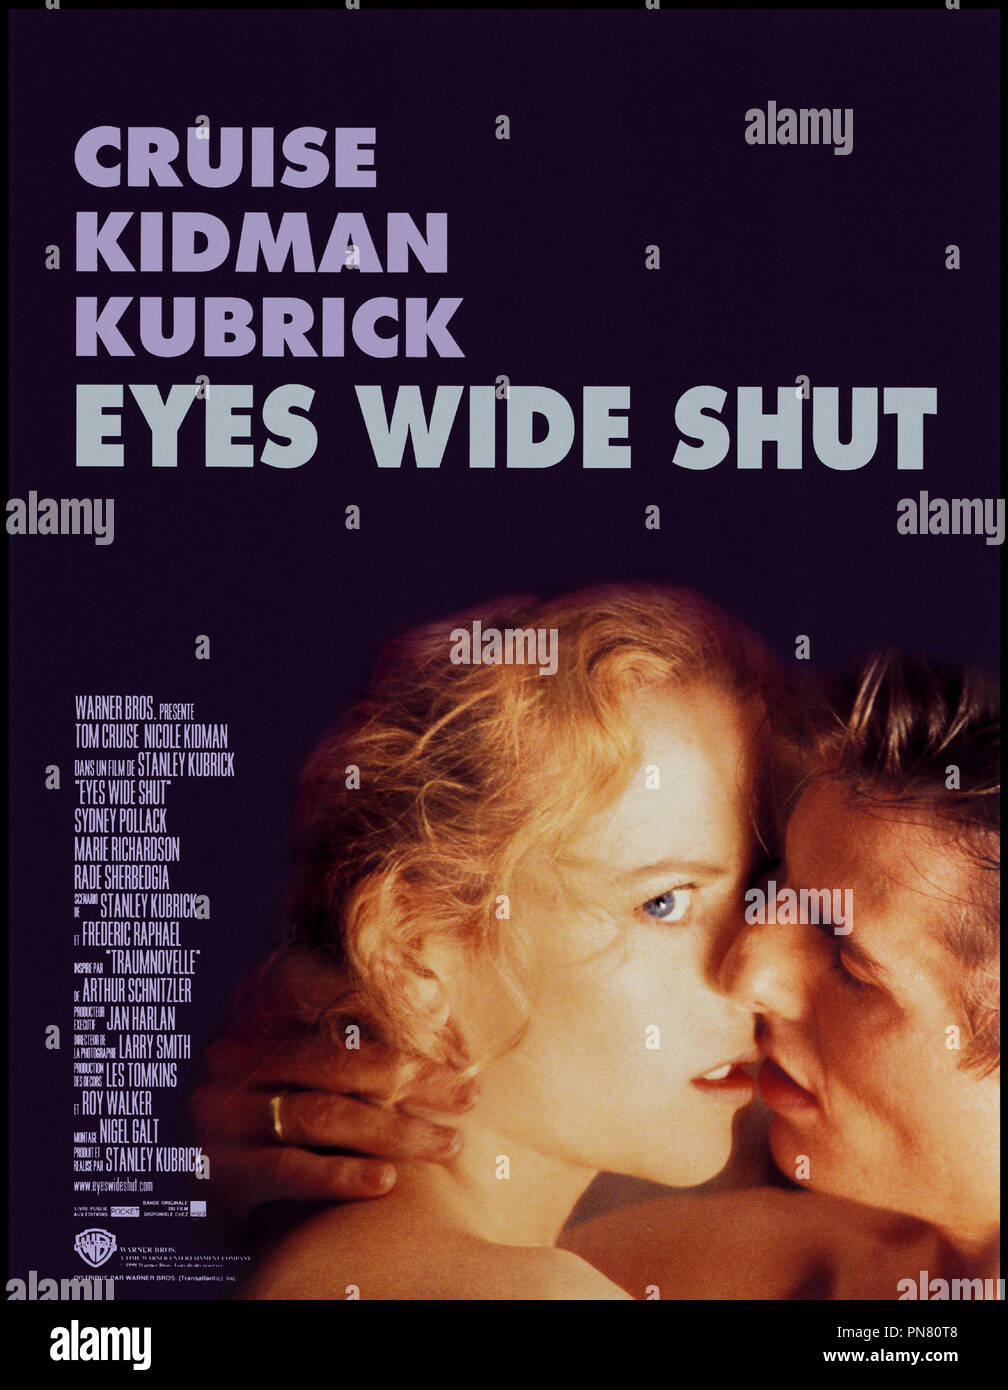 Prod DB © Warner/Hobby Films/Pole Star / DR EYES WIDE SHUT (EYES WIDE SHUT) de Stanley Kubrick 1999 USA / GB affiche d'aprs le roman de Arthur Schnitzler 'TRAUMNOVELLE' - Stock Image